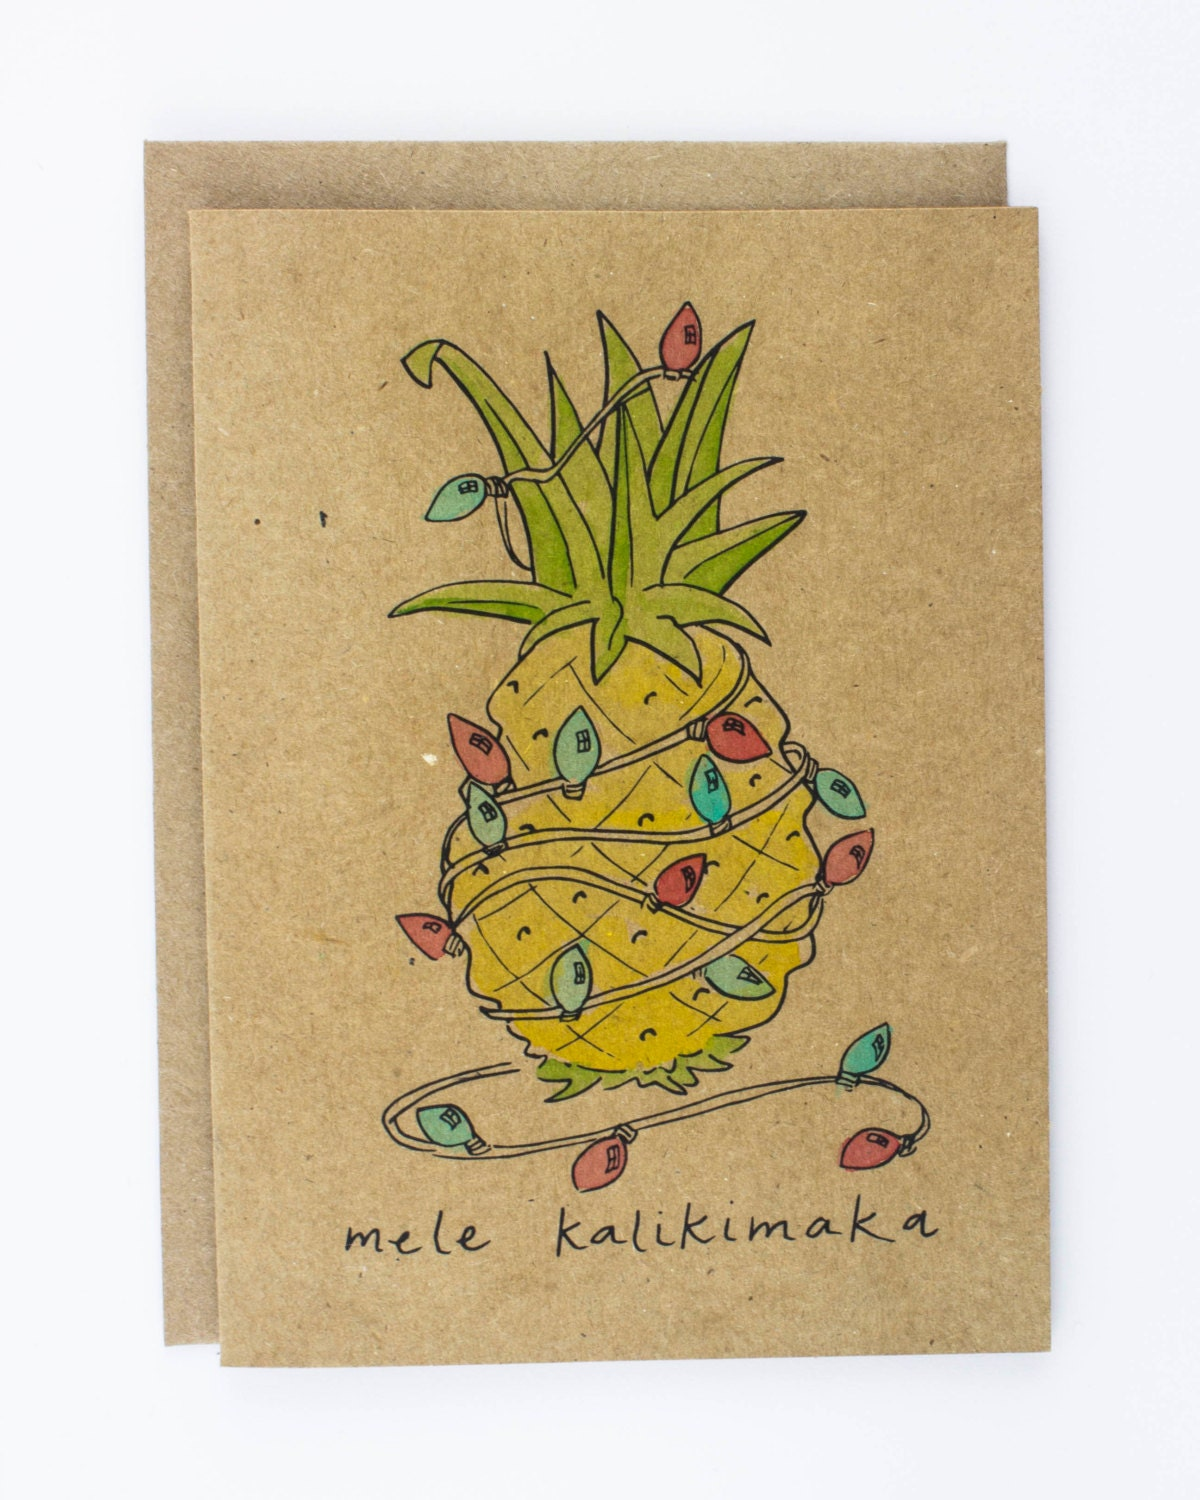 Mele Kalikimaka Pineapple Hawaii Illustrated Christmas Card, Greeting Card